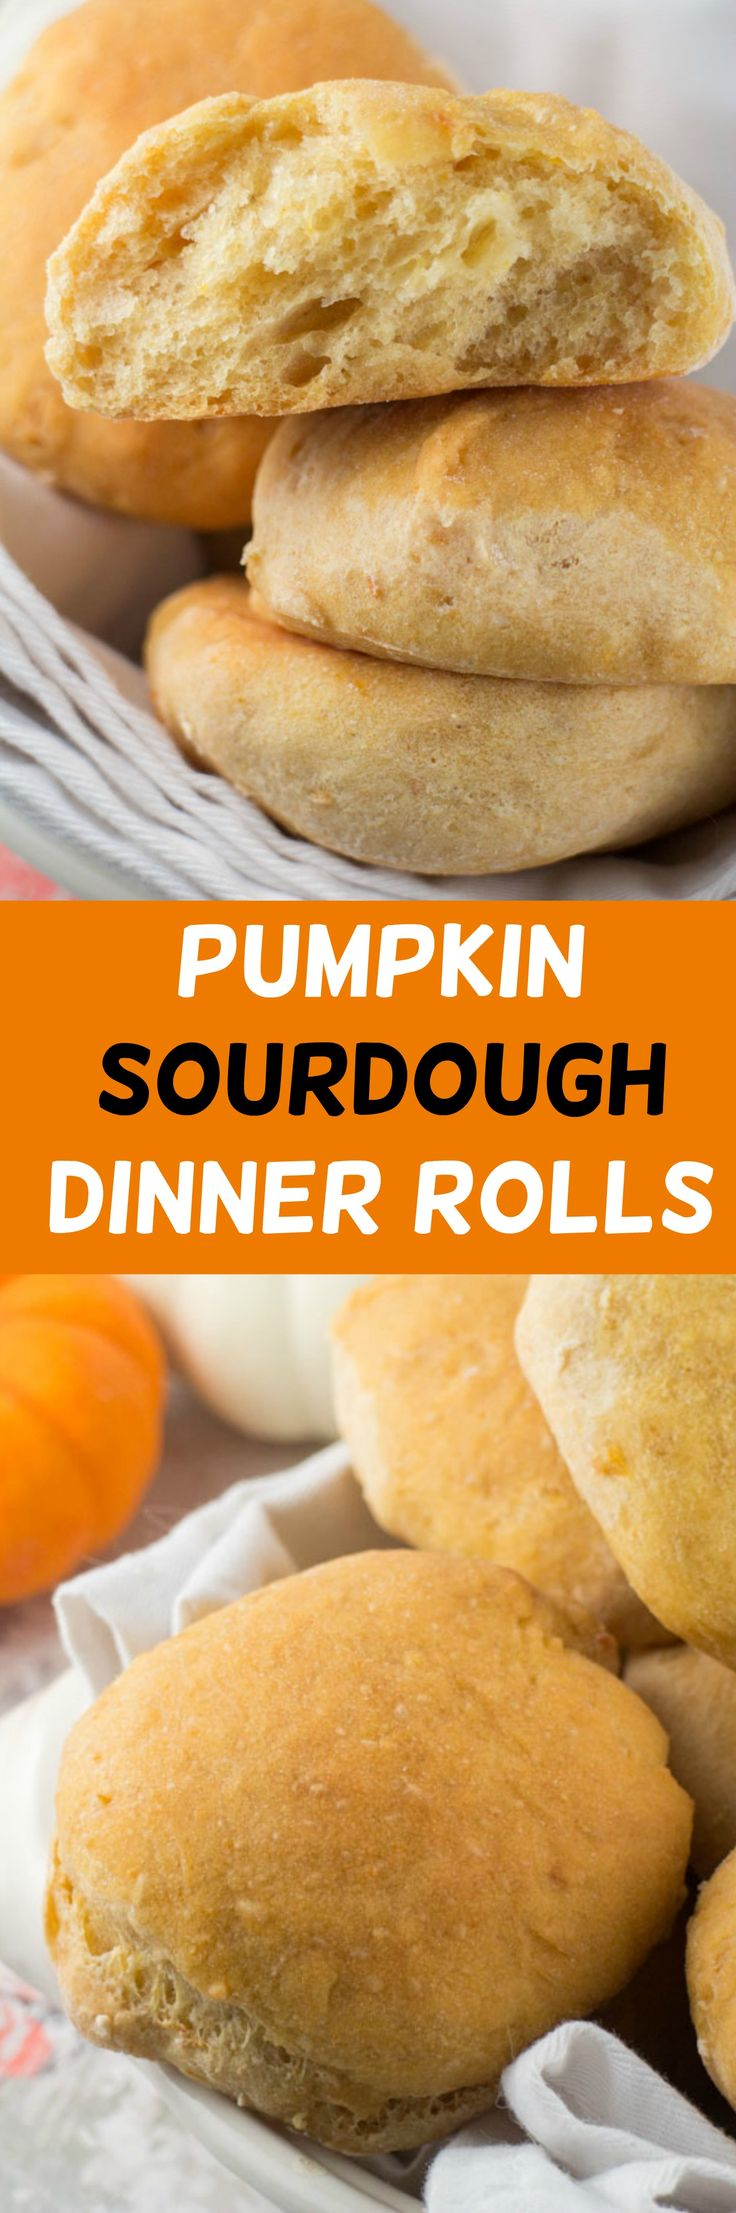 Extra soft Pumpkin Sourdough Dinner Rolls recipe. These rolls have a subtle pumpkin flavor and make the perfect roll for Fall dinners and holidays.